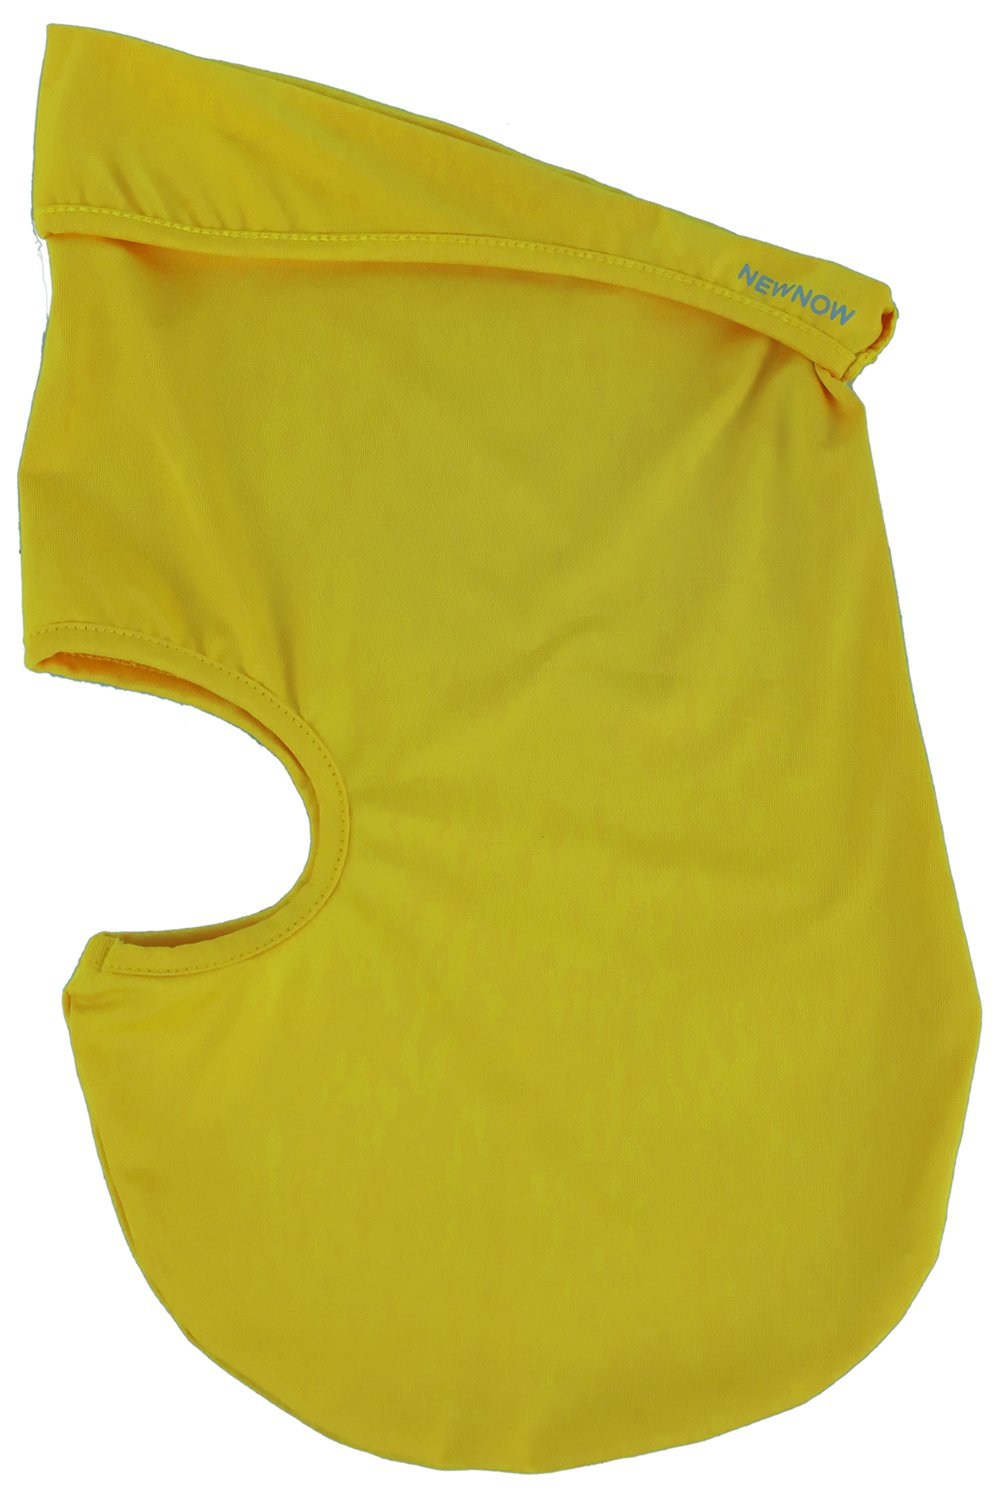 NewNow Candy Color Ultra Thin Ski Face Mask Under A Bike/Football Helmet -Balaclava (Yellow) by NewNow (Image #3)